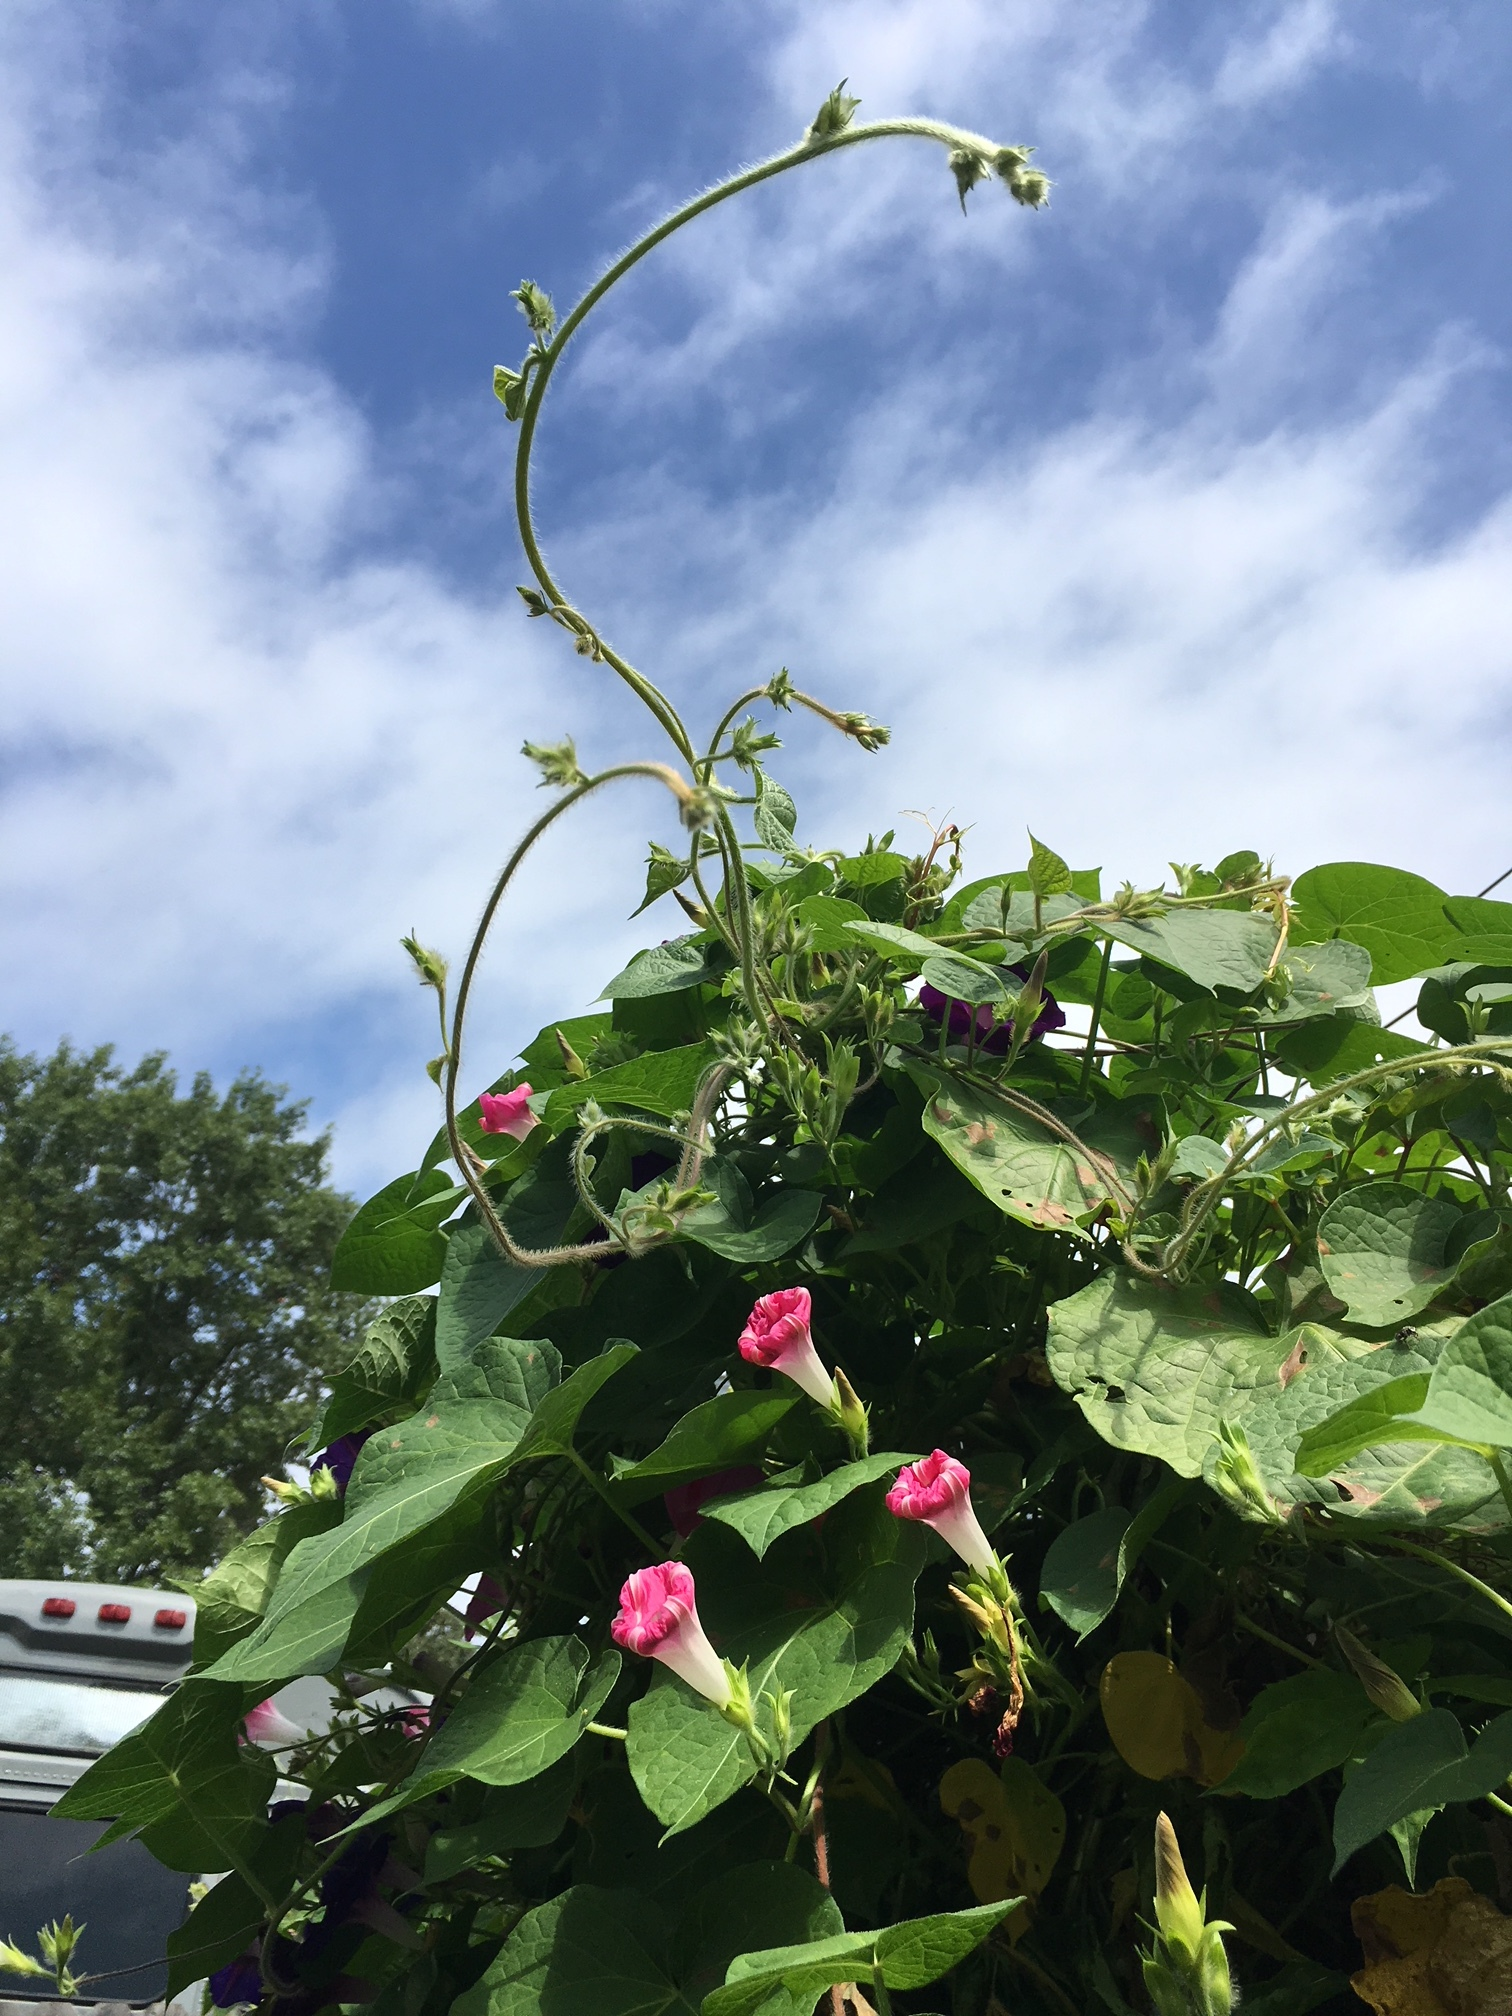 Our morning glories are happy.